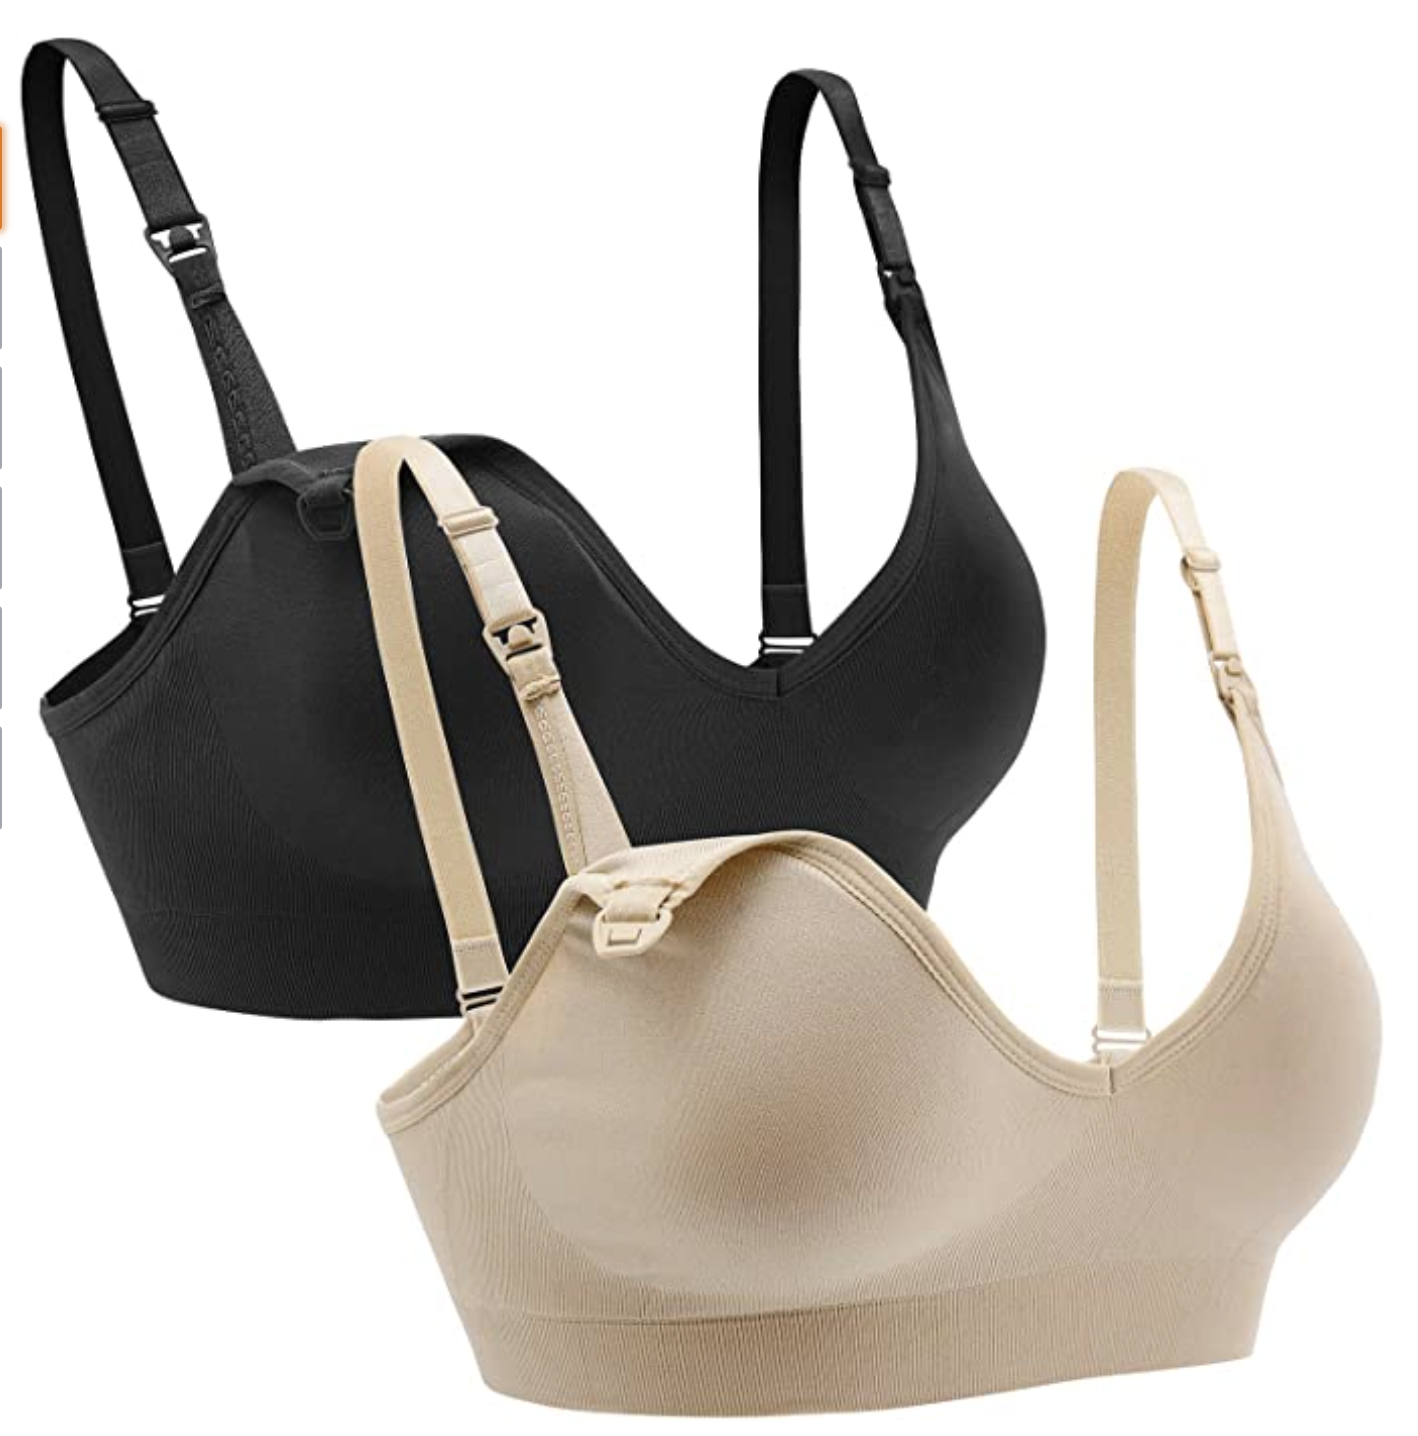 Amazon Favorites: 6 Pregnancy Essentials featured by top Atlanta lifestyle blogger, Moderately High Maintenance: Maternity bra